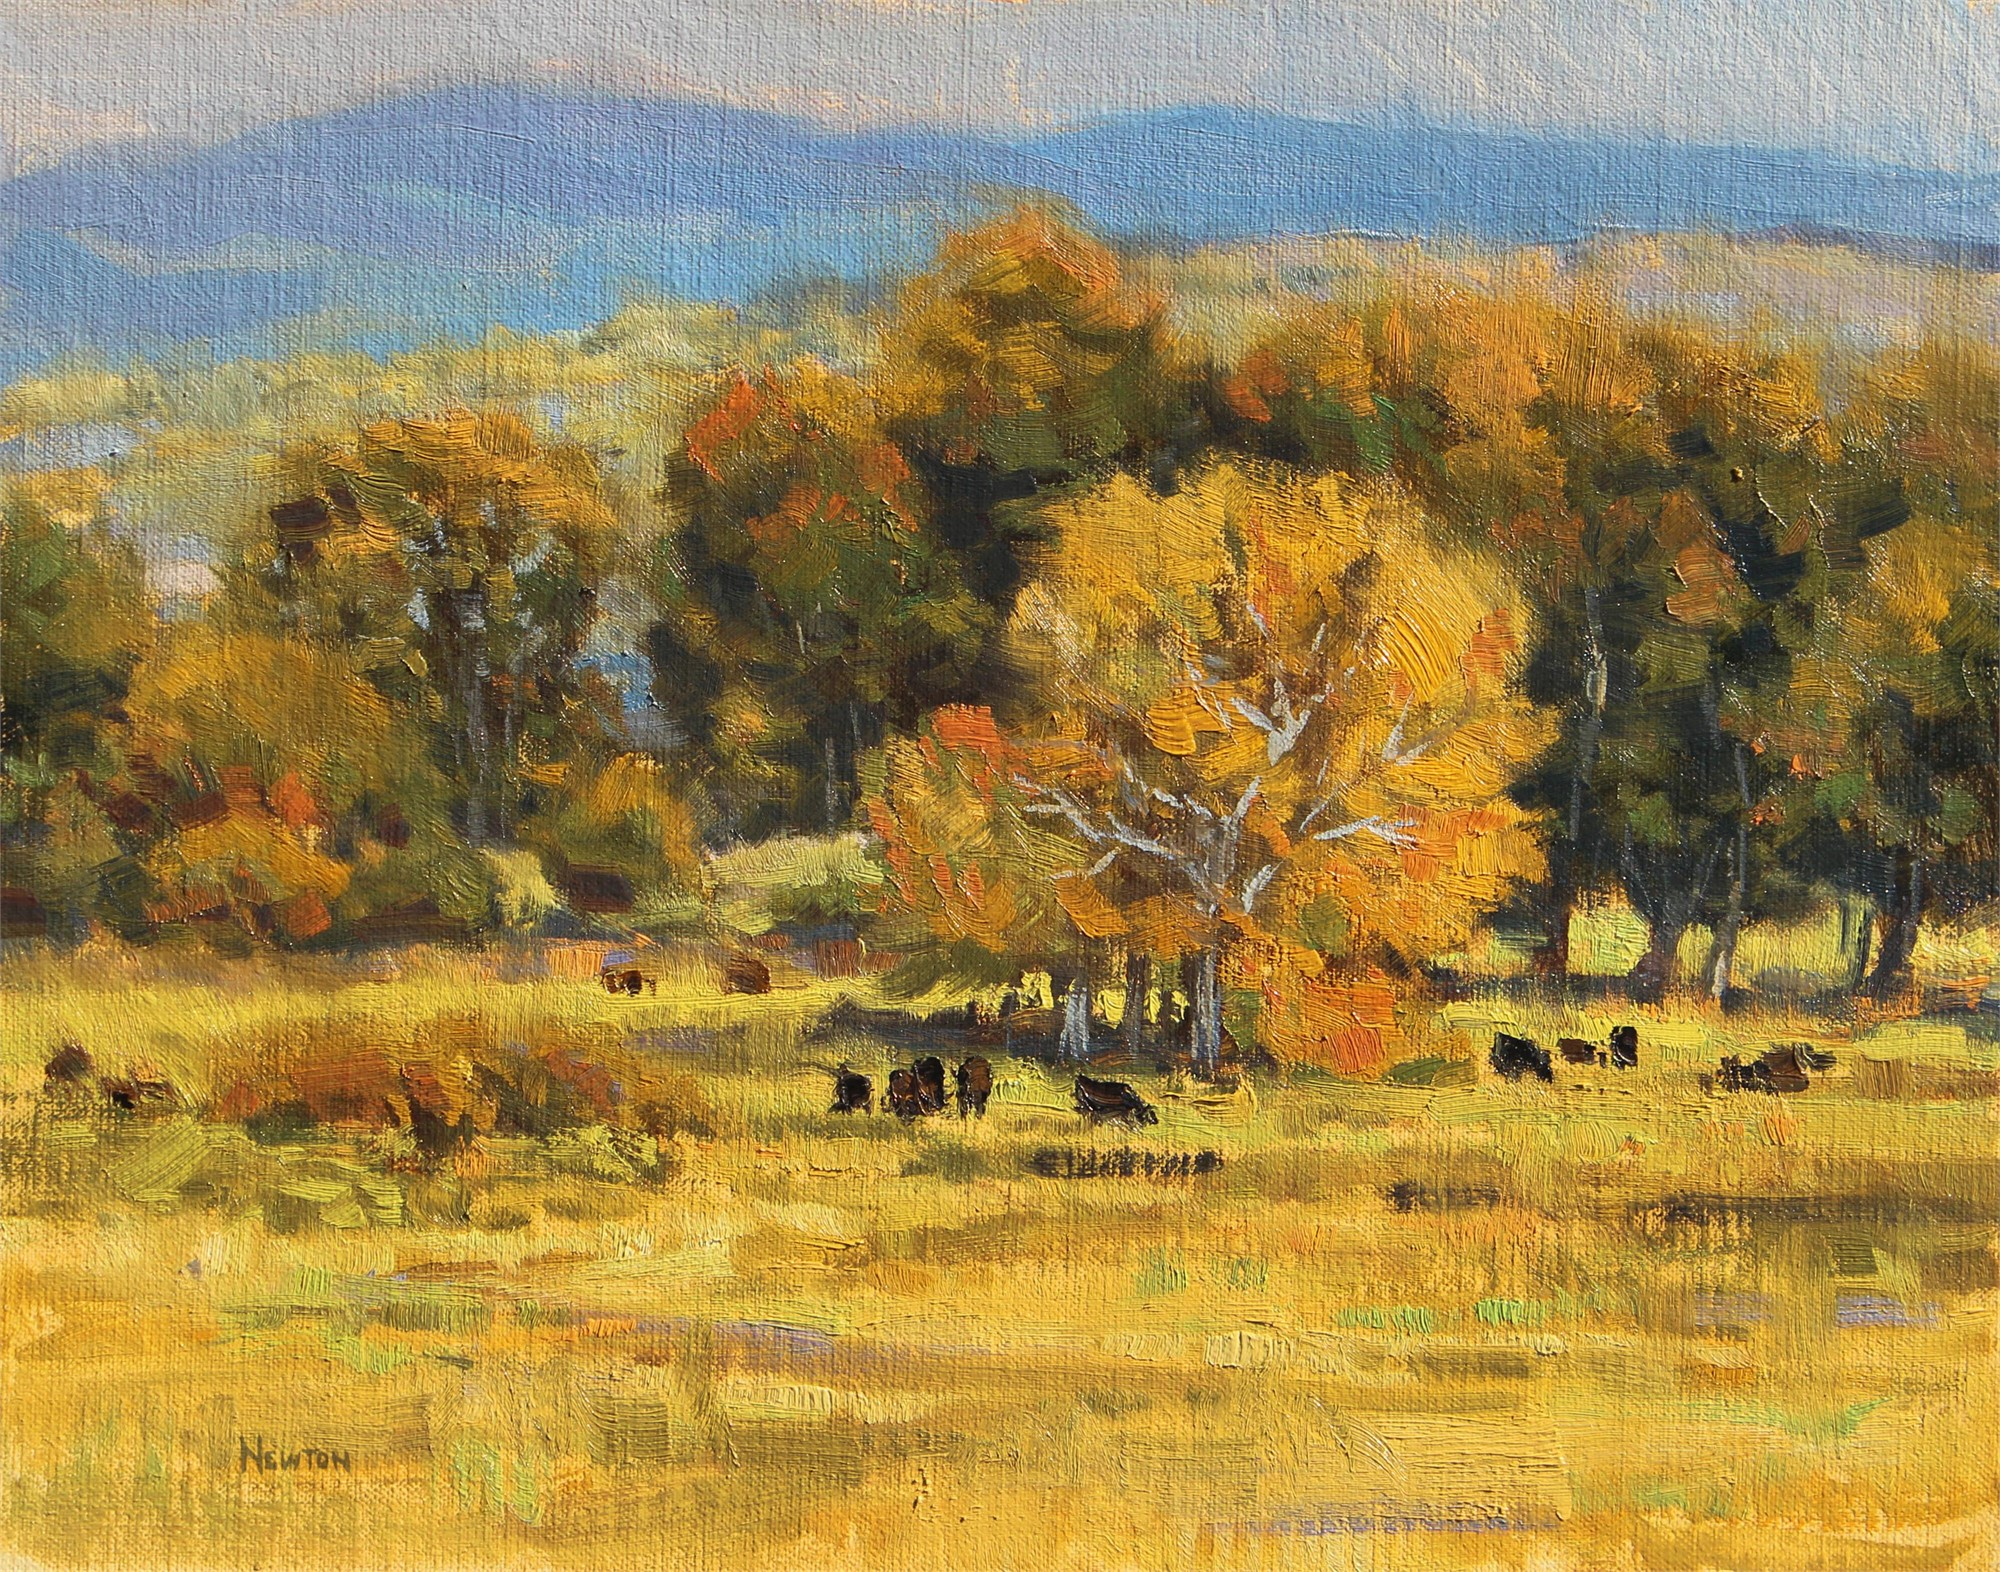 Cottonwoods & Cattle by Wes Newton